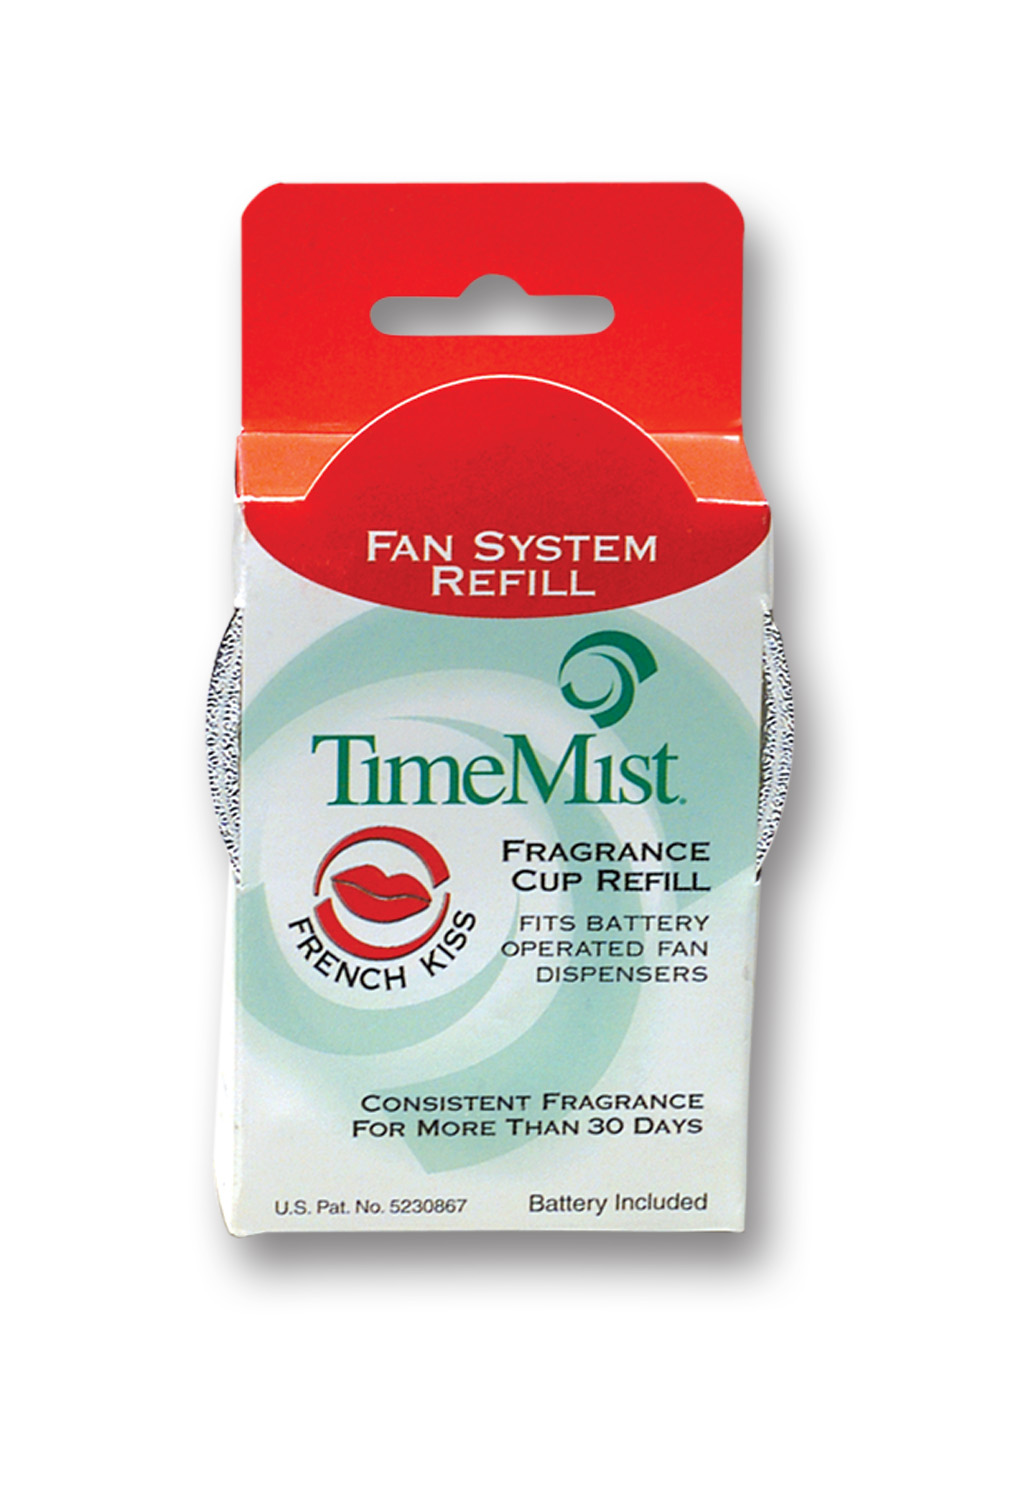 French Kiss - TimeMist Fan System Fragrance Cup Refill